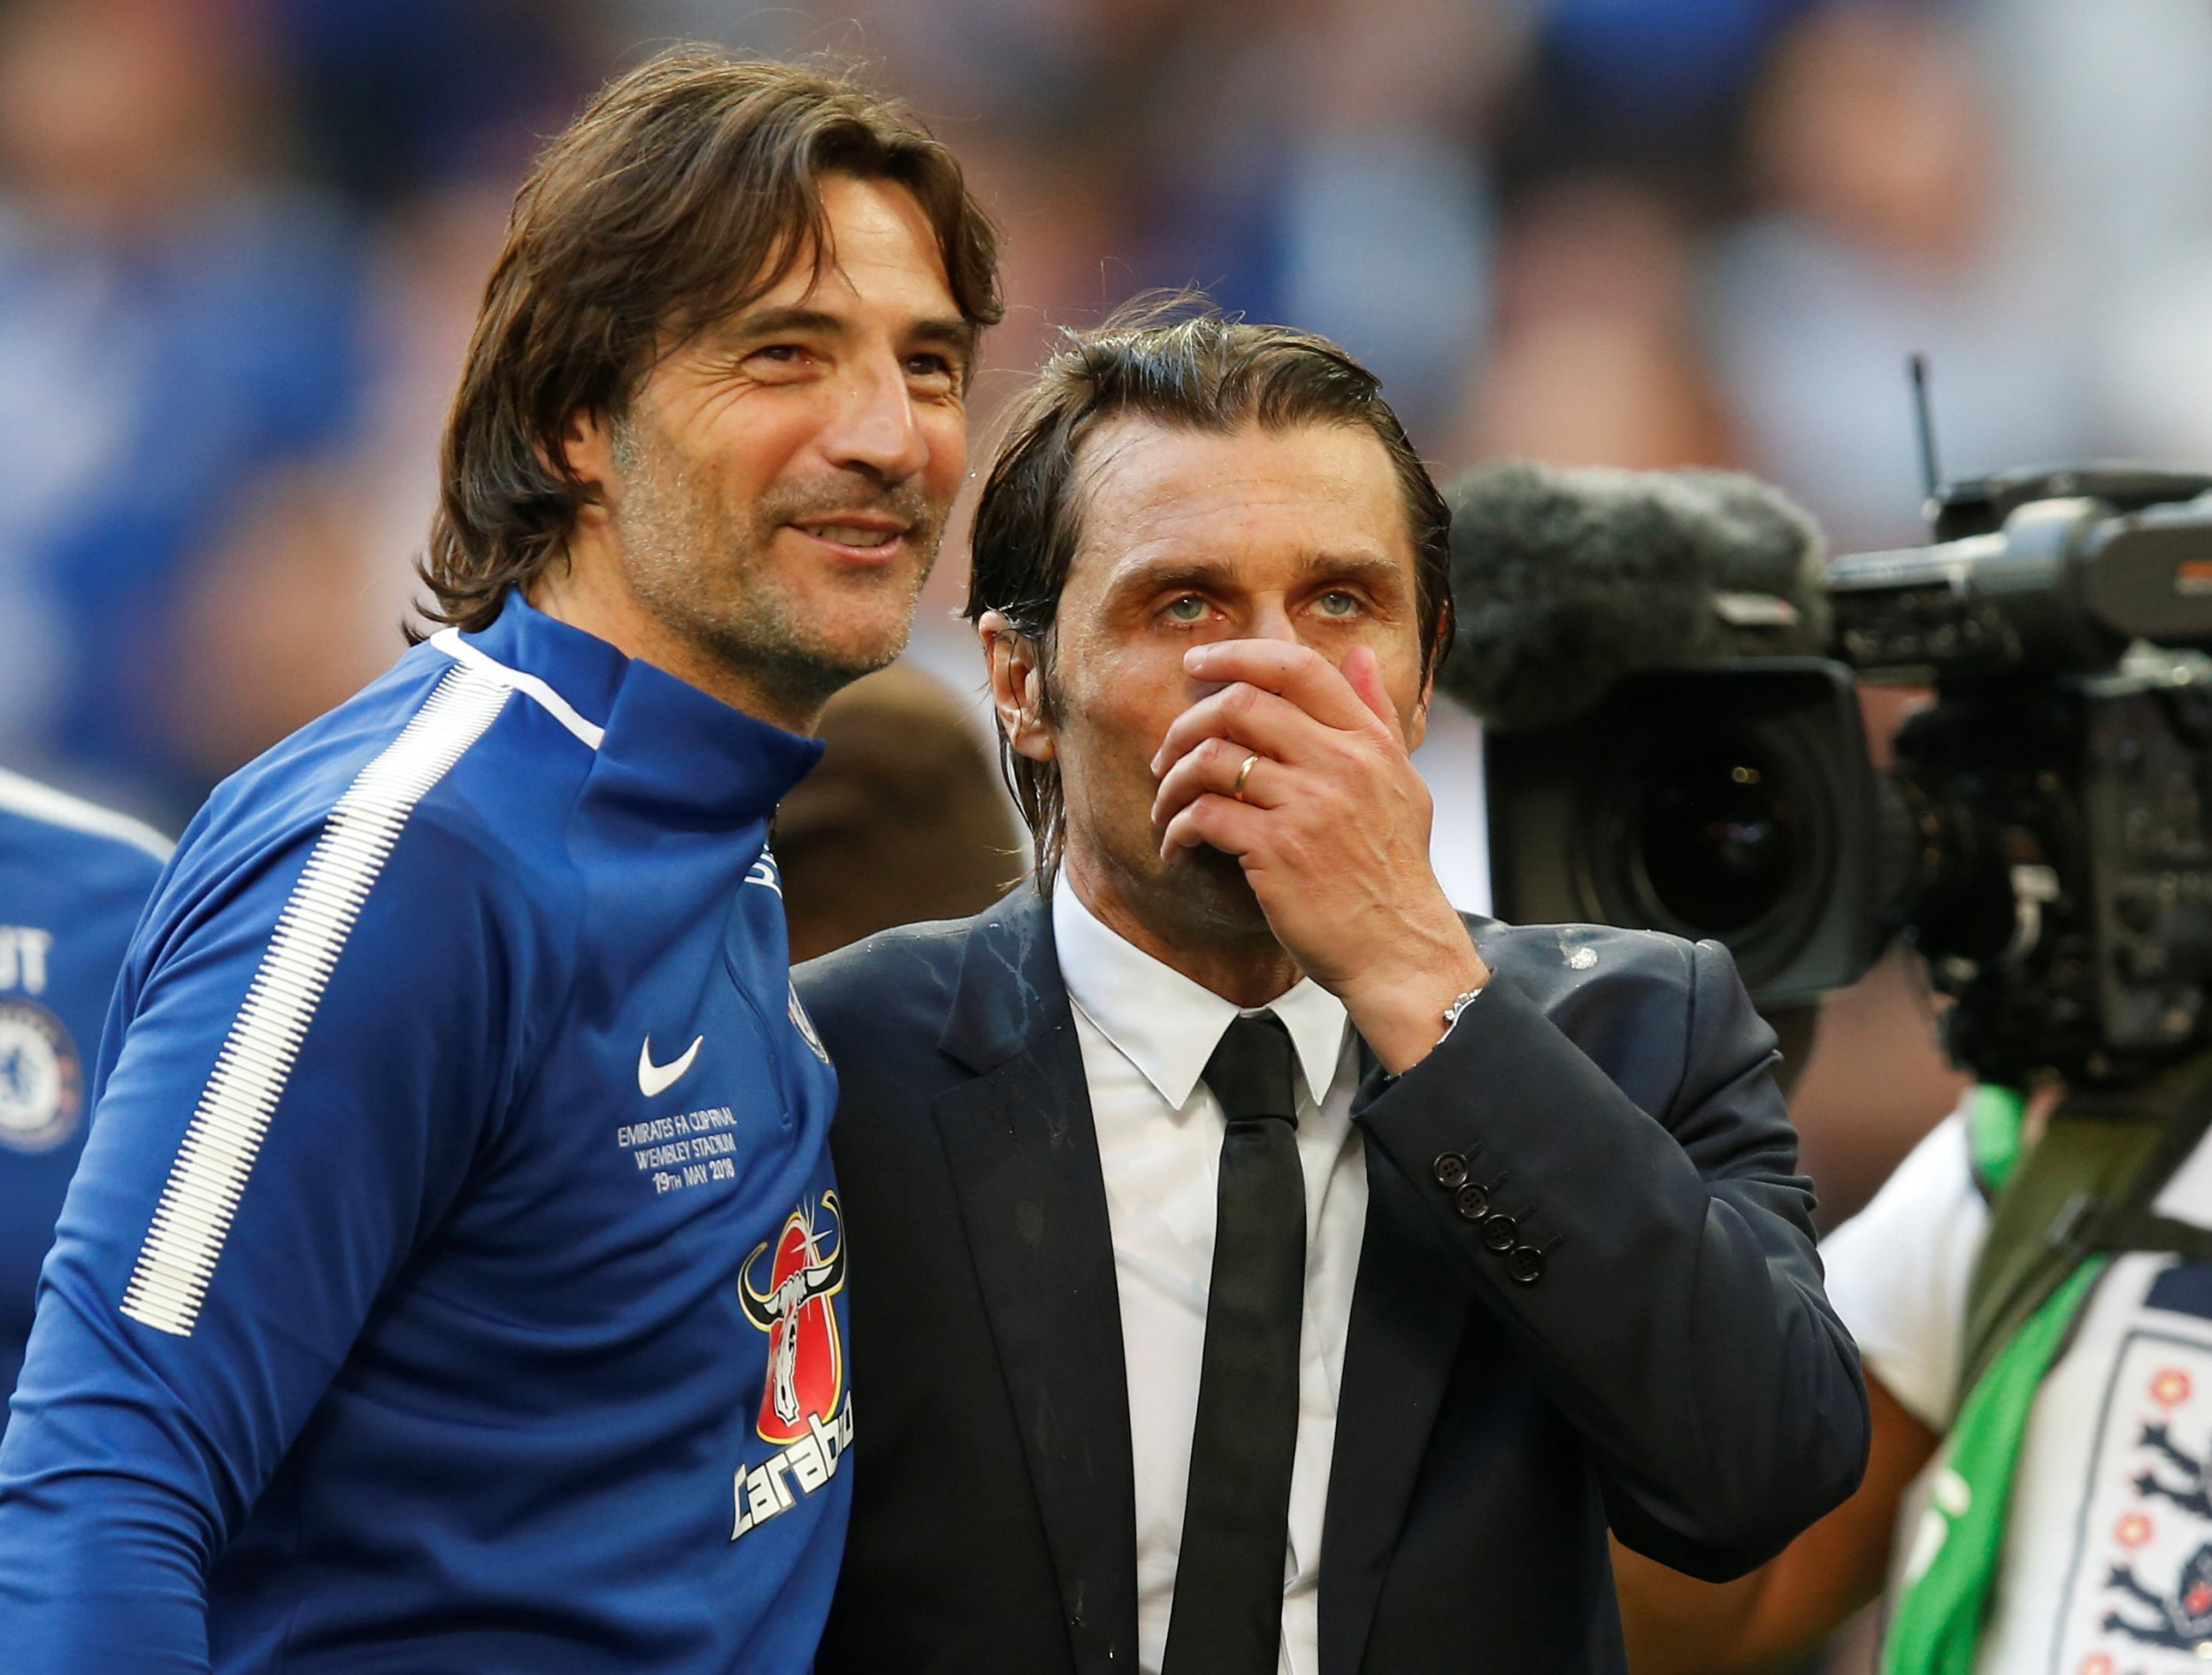 Chelsea consider keeping Antonio Conte as manager after Real Madrid job filled